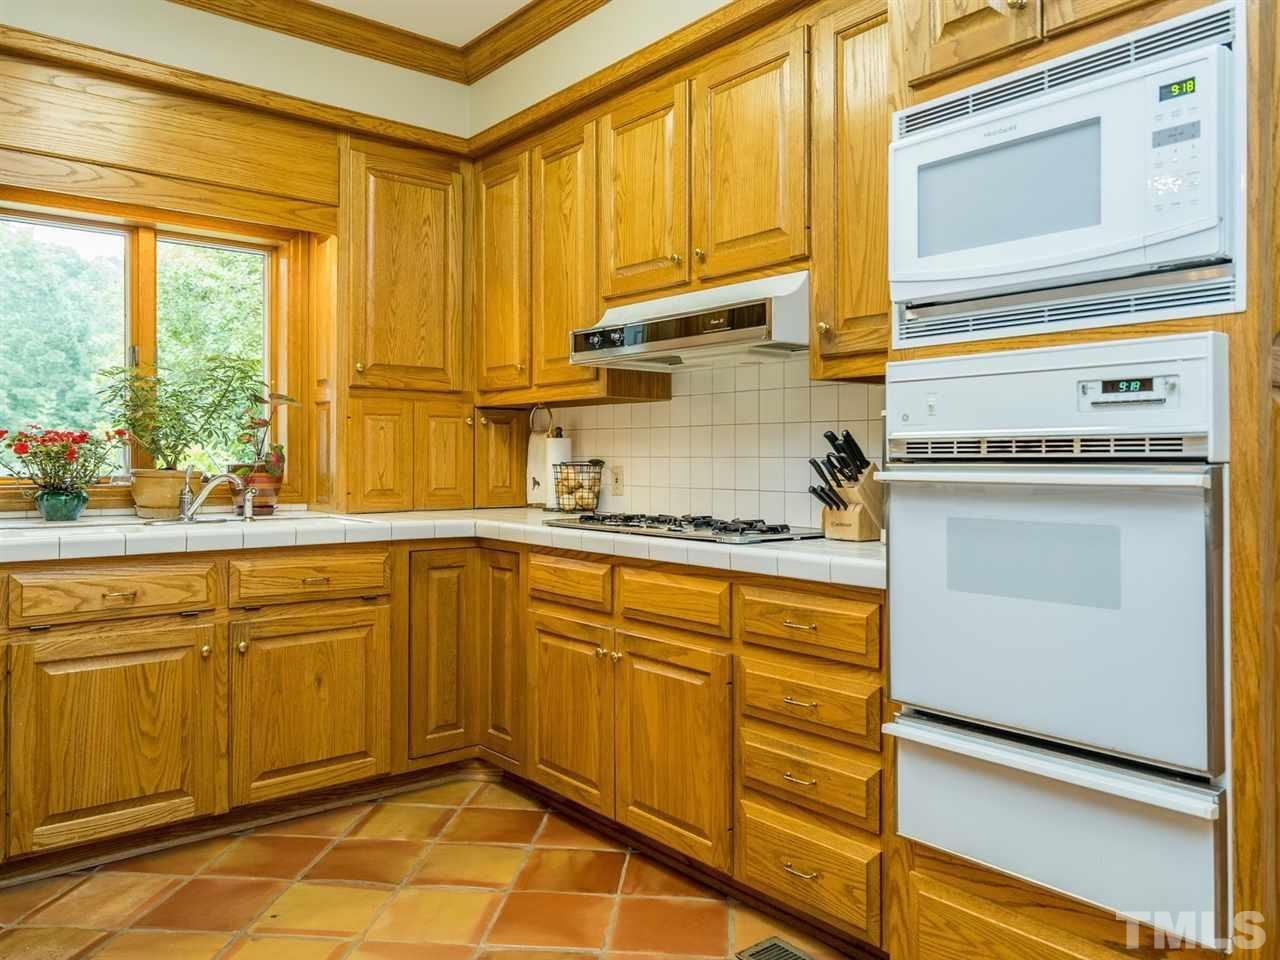 There is abundant cabinet and counter space in this well-designed kitchen.